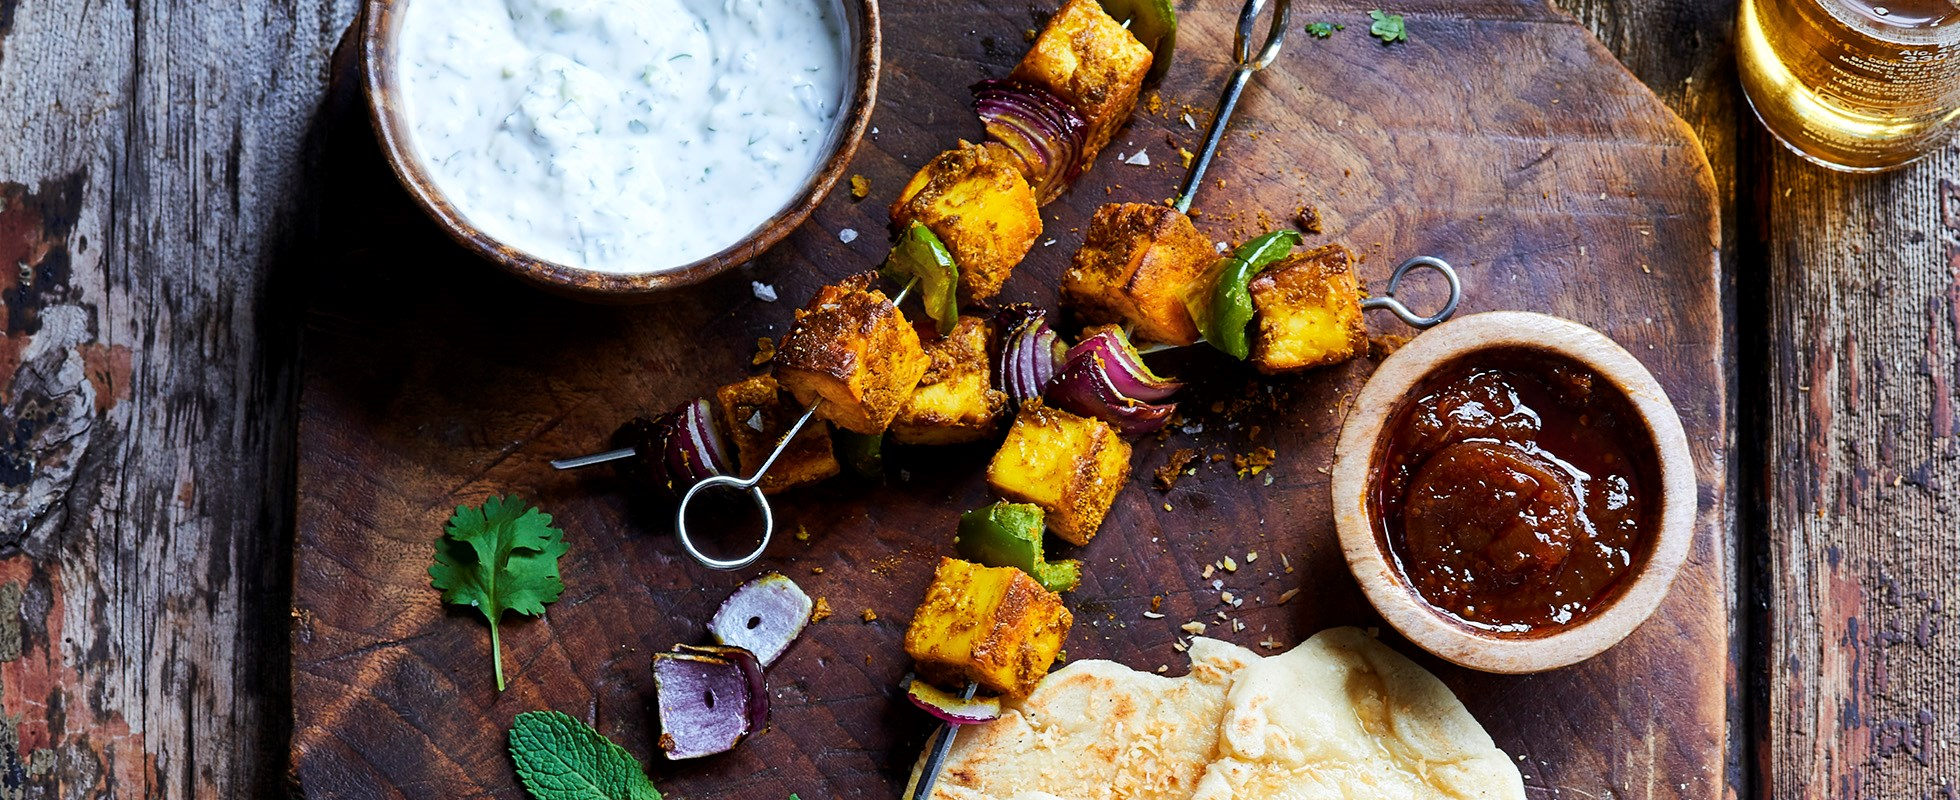 Turmeric and coconut paneer with charred naans